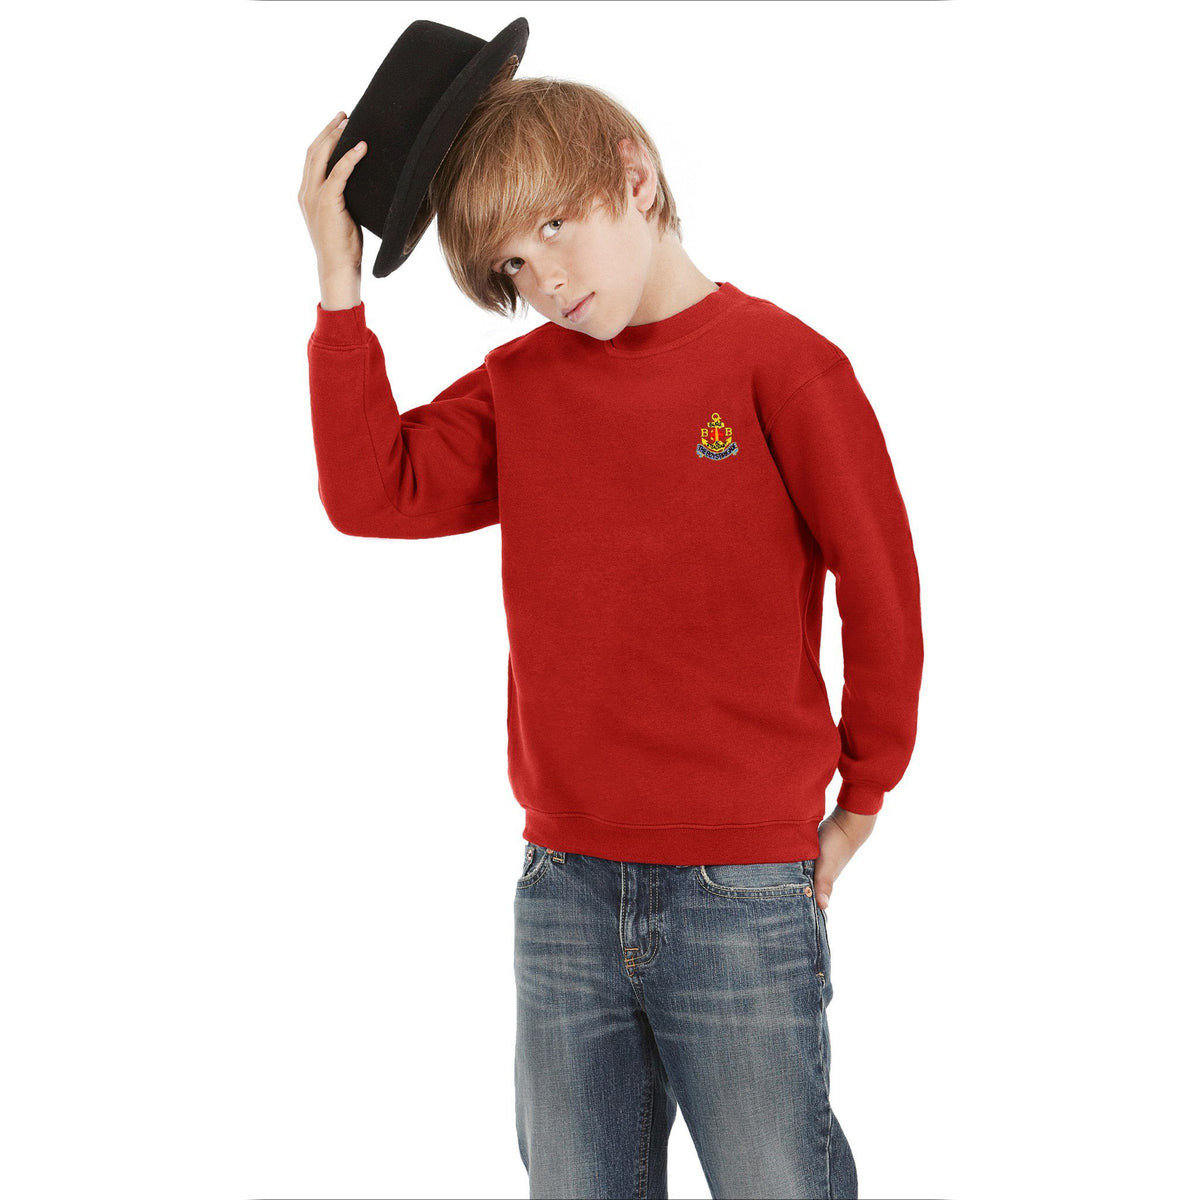 BB Alproso Sweat Shirt Boy's Sweat Shirt Image Red 4-5 Years(24)